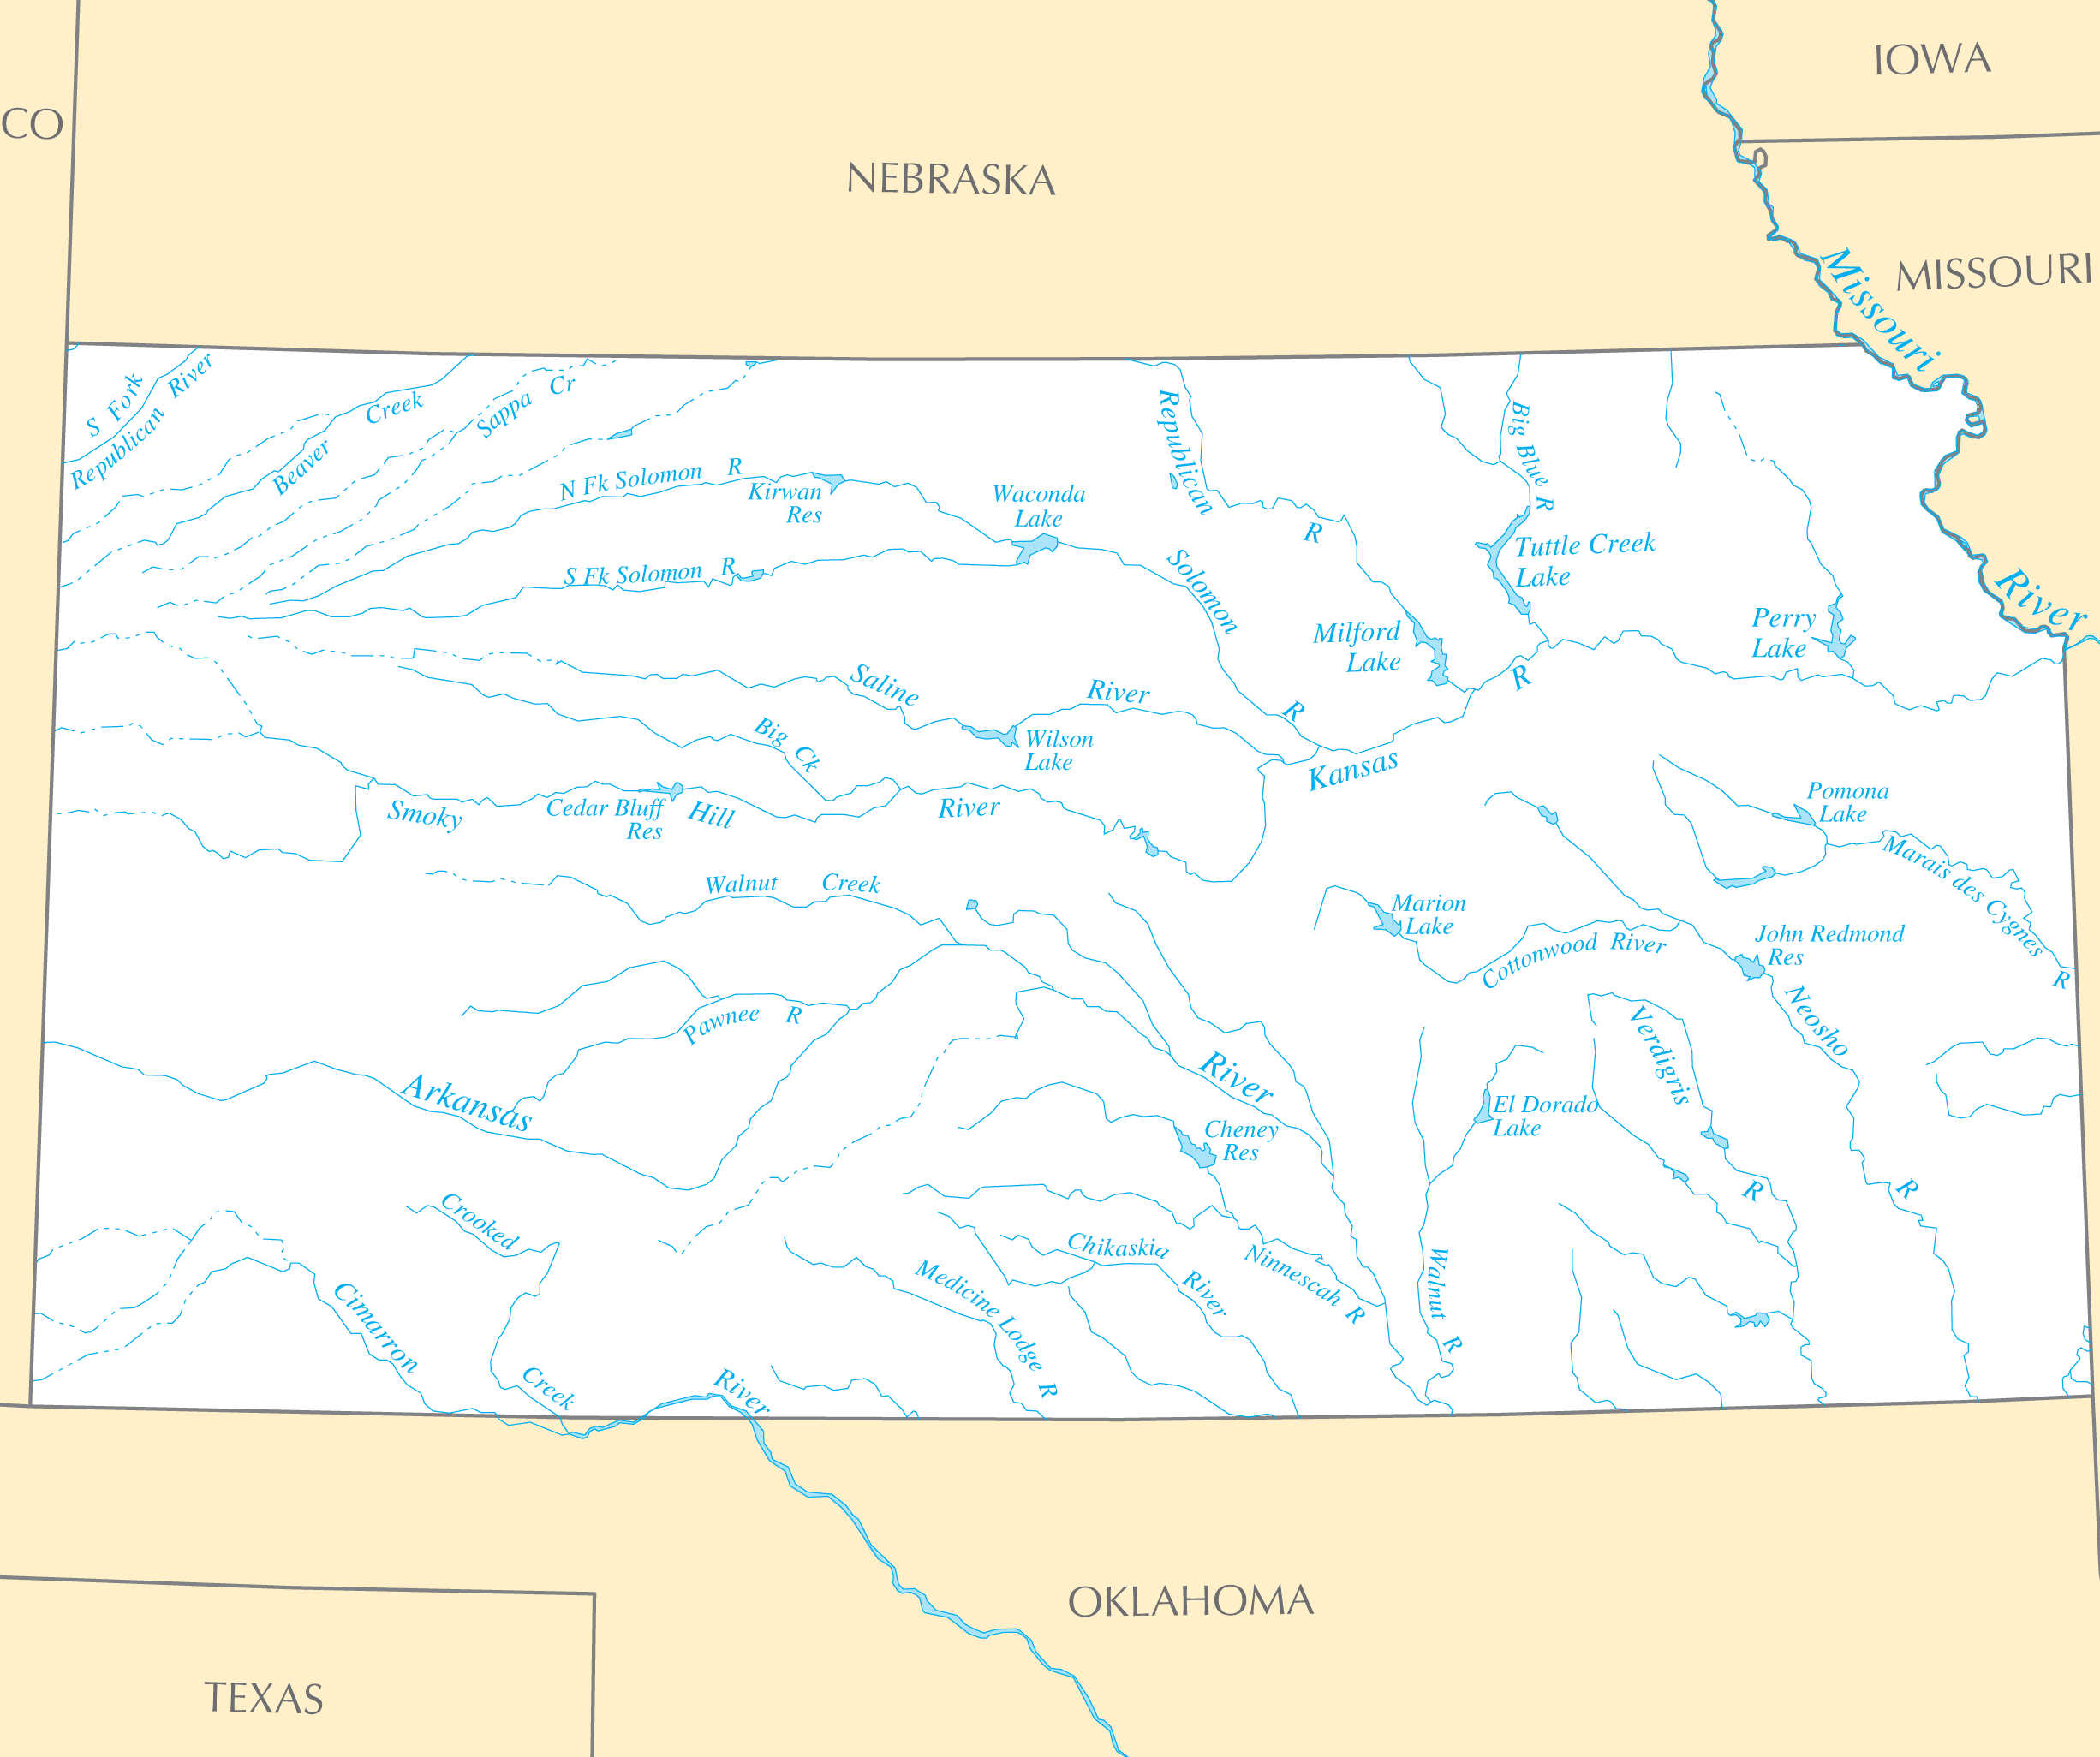 Kansas Rivers And Lakes Mapsofnet - Kansas rivers map